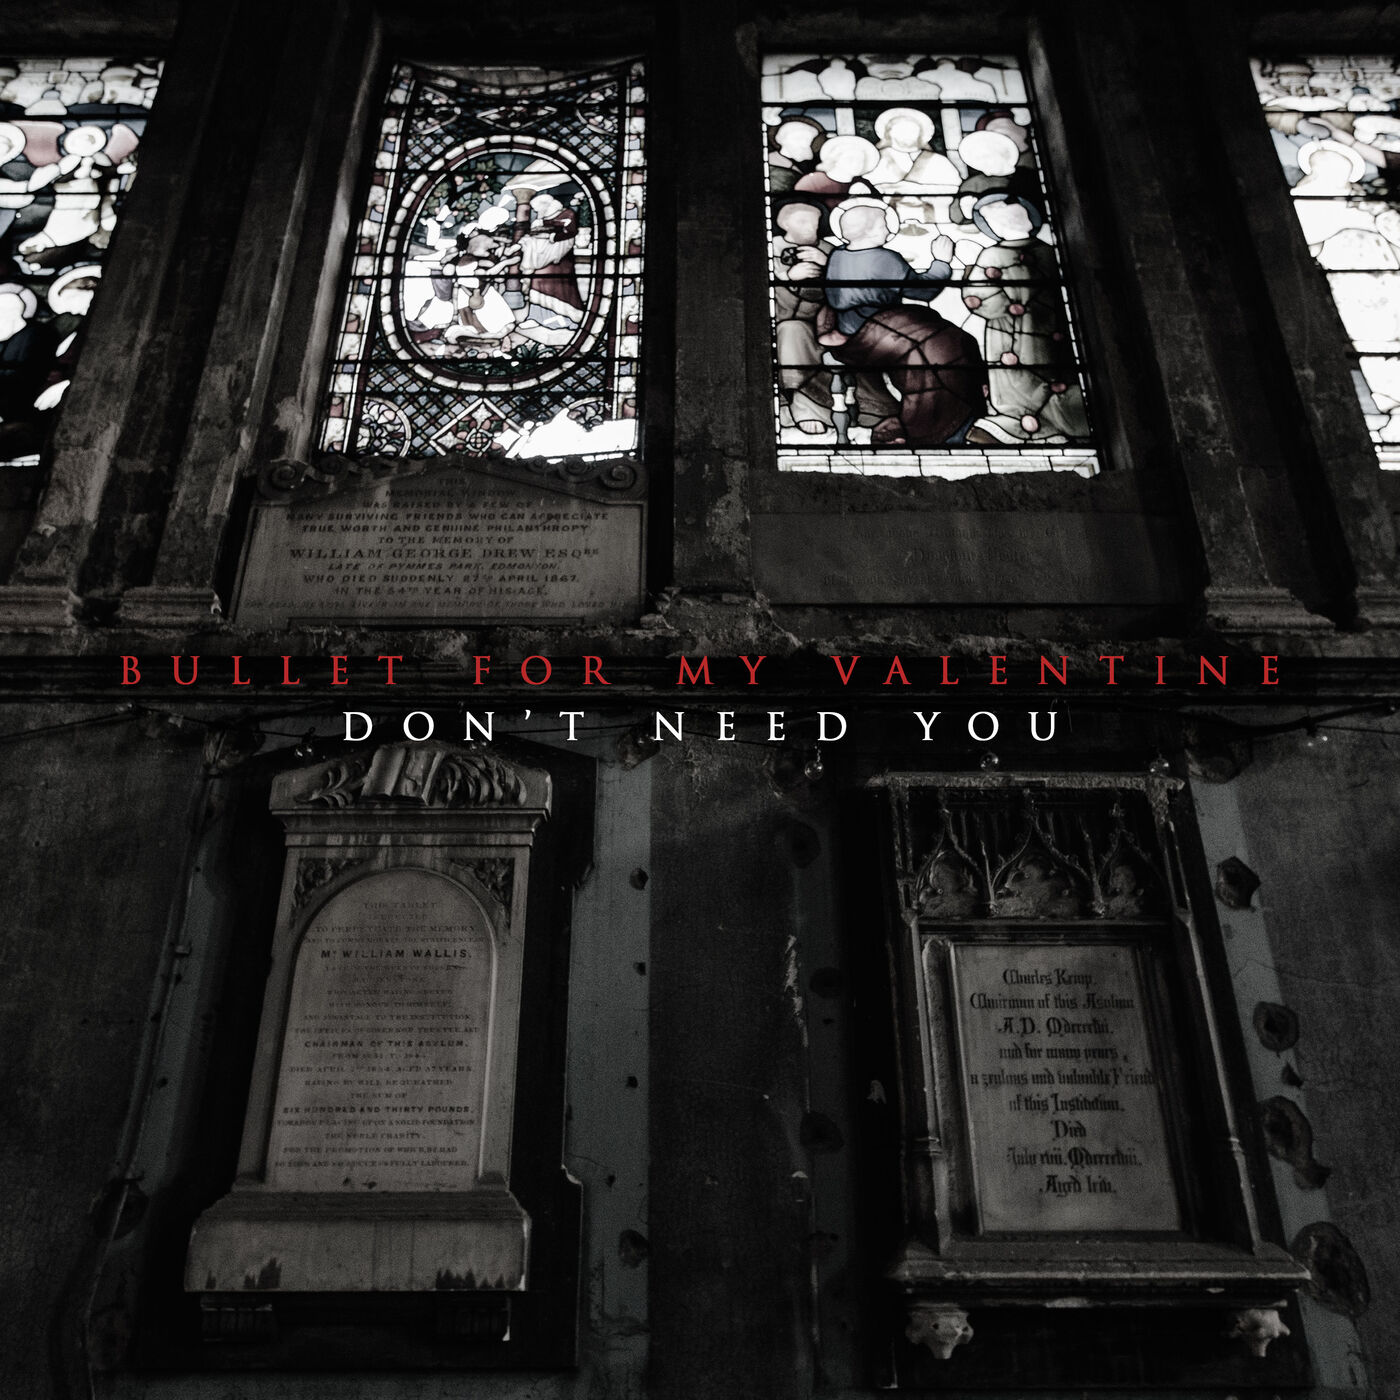 Schön Bullet For My Valentine   Donu0027t Need You [single] (2016)